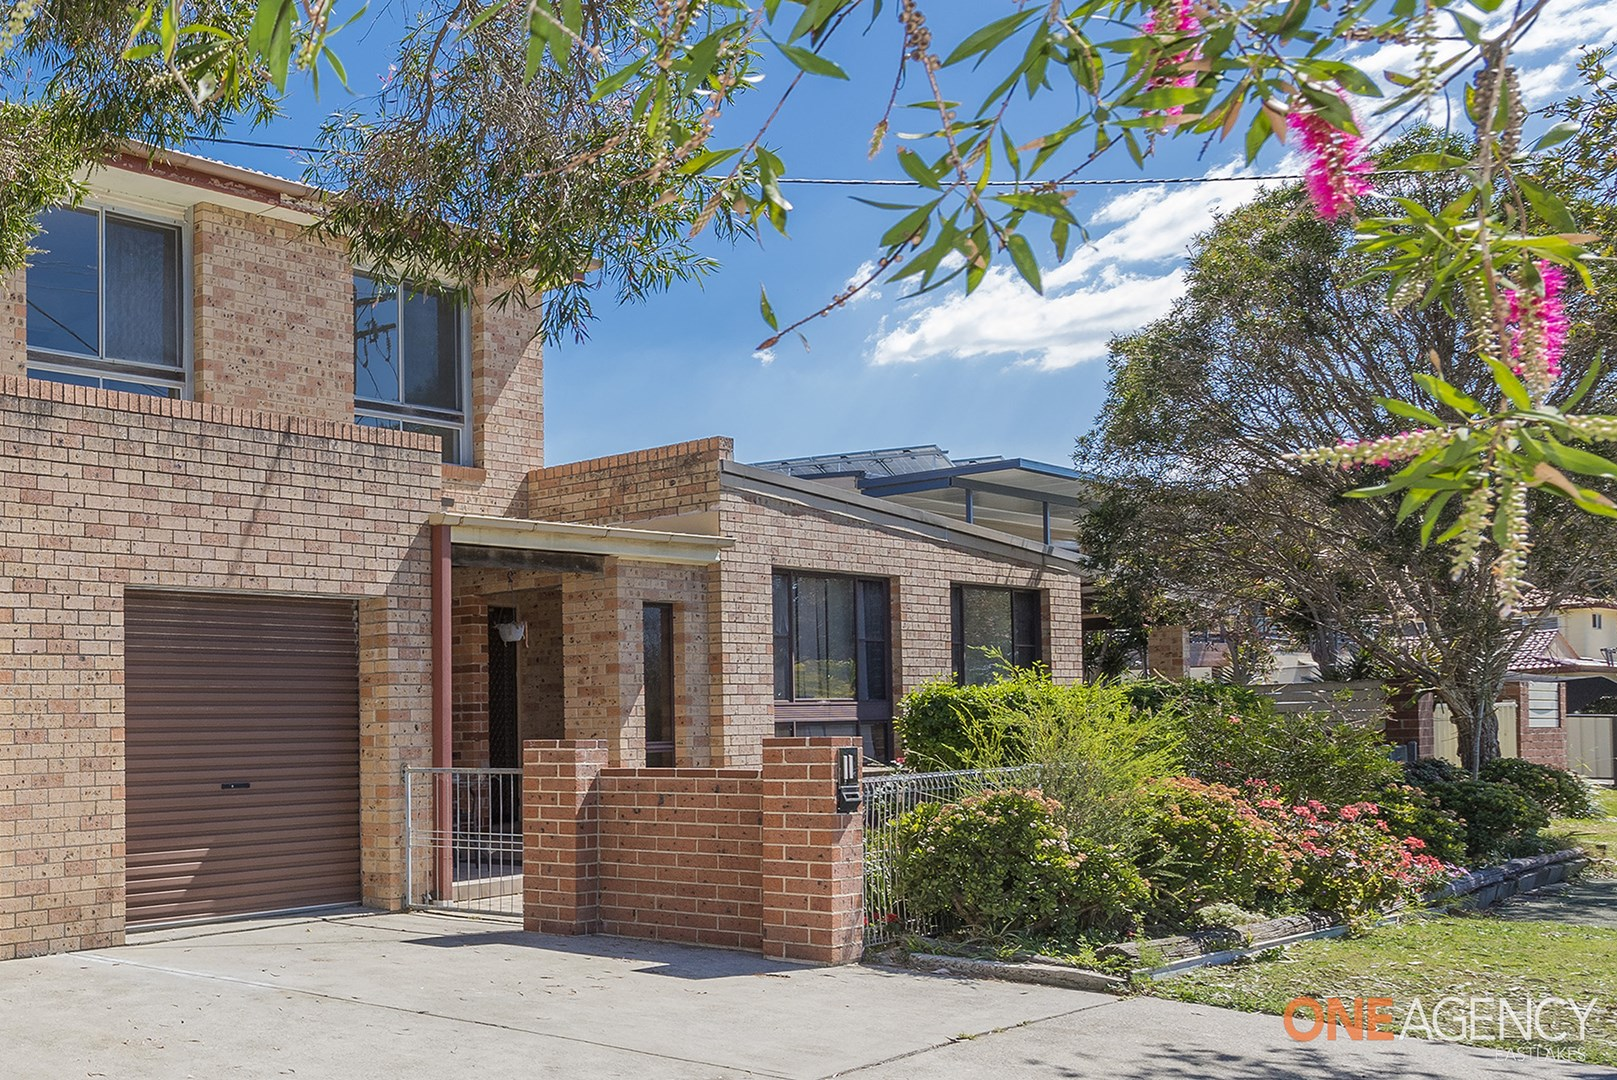 Auction Guide $450,000 - $495,000 (under offer)